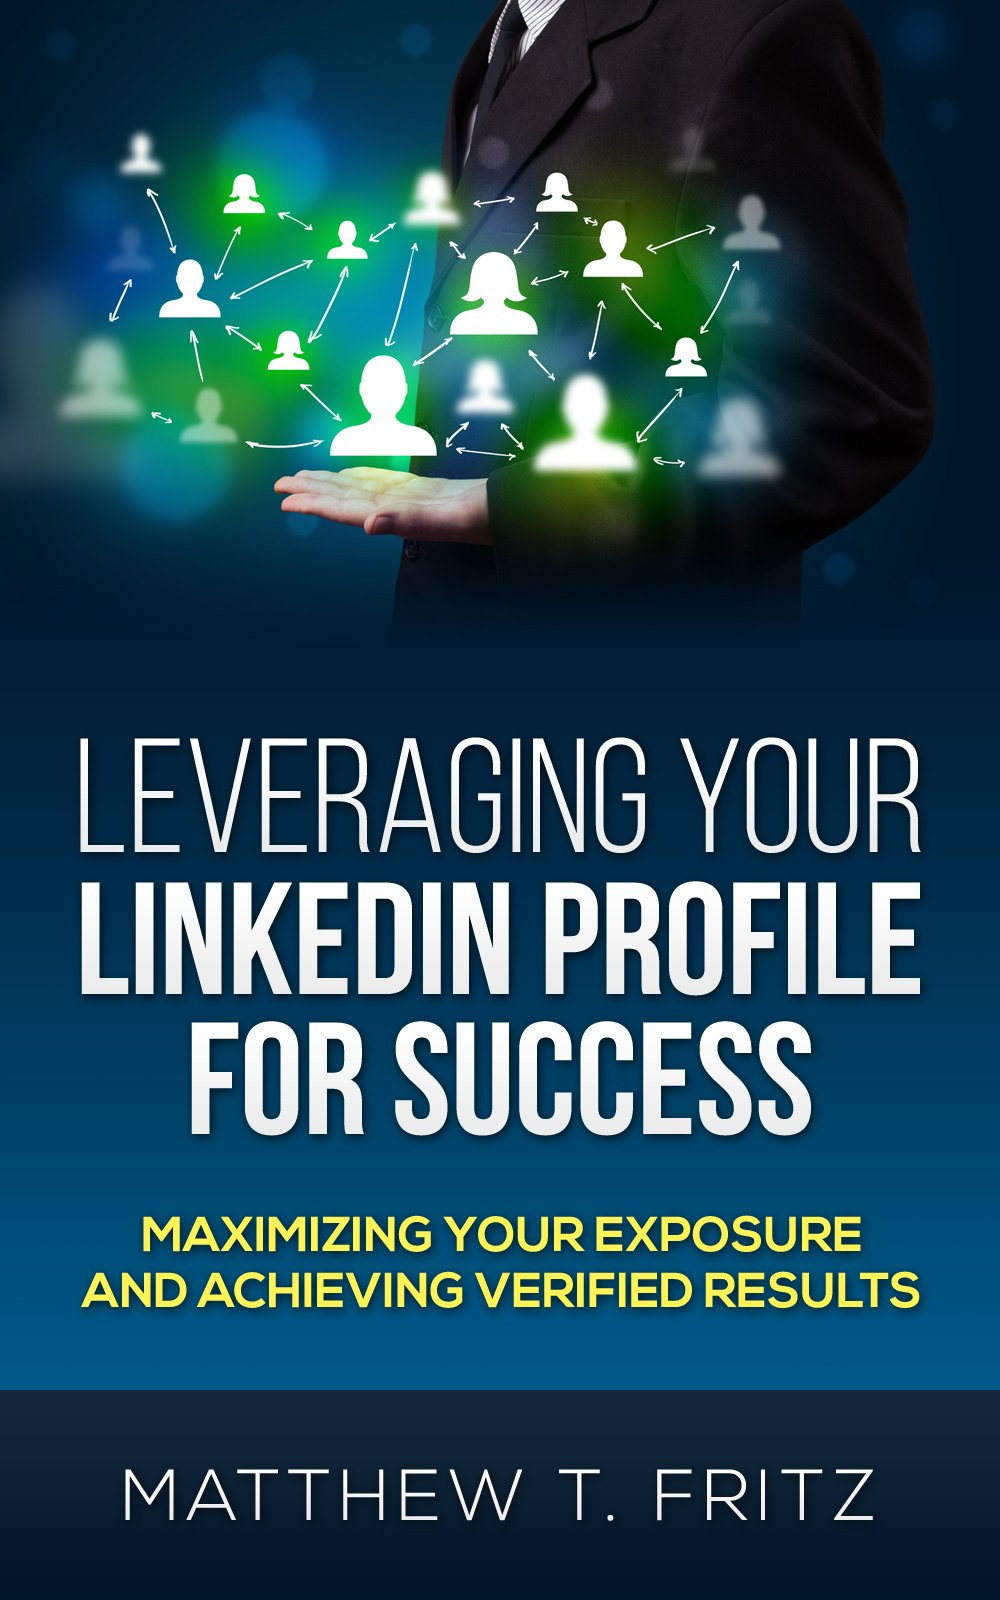 Download Leveraging Your LinkedIn Profile For Success: Maximizing Your Exposure And Achieving Verified Results (English Edition) 